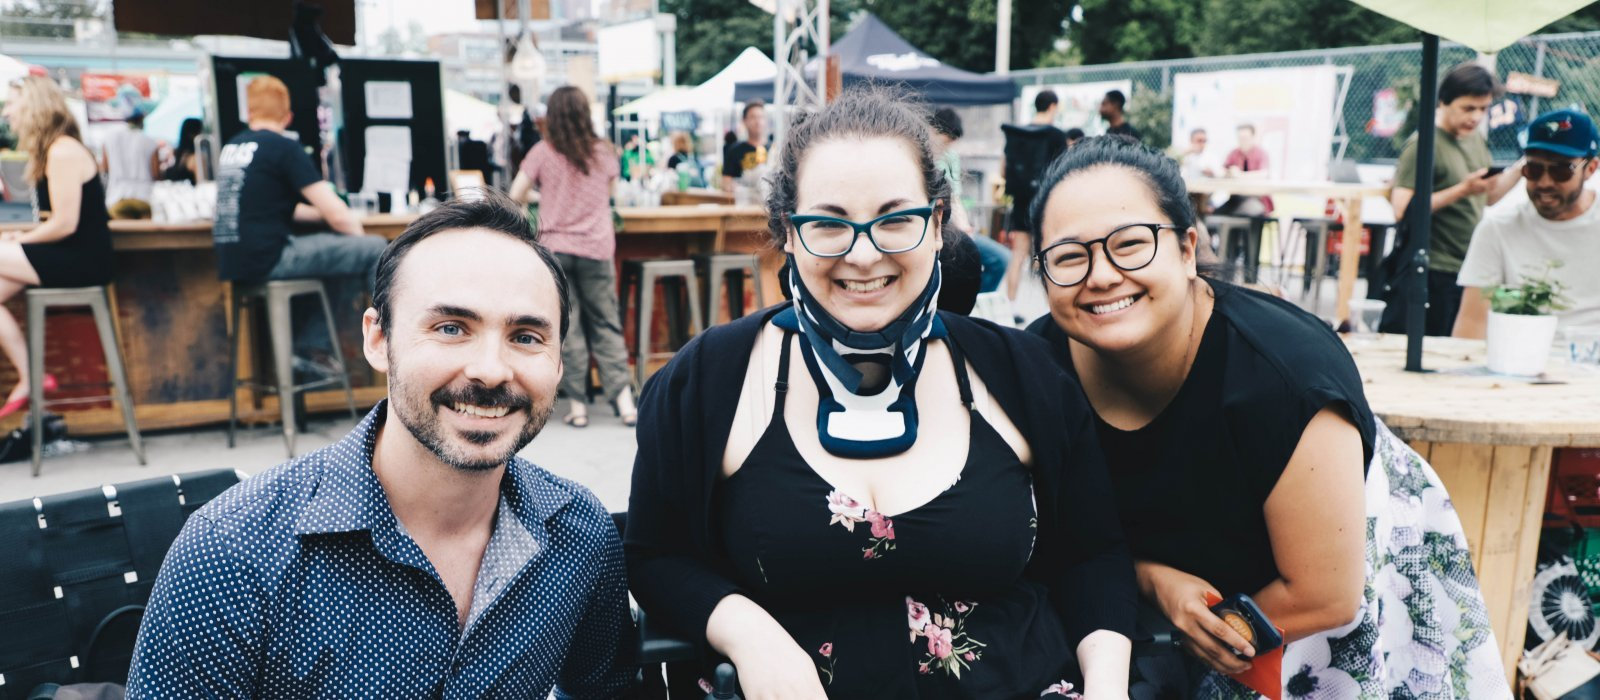 Accessibility Award winner Ophira Calof sits with Tyler Seguin at the Fringe Patio